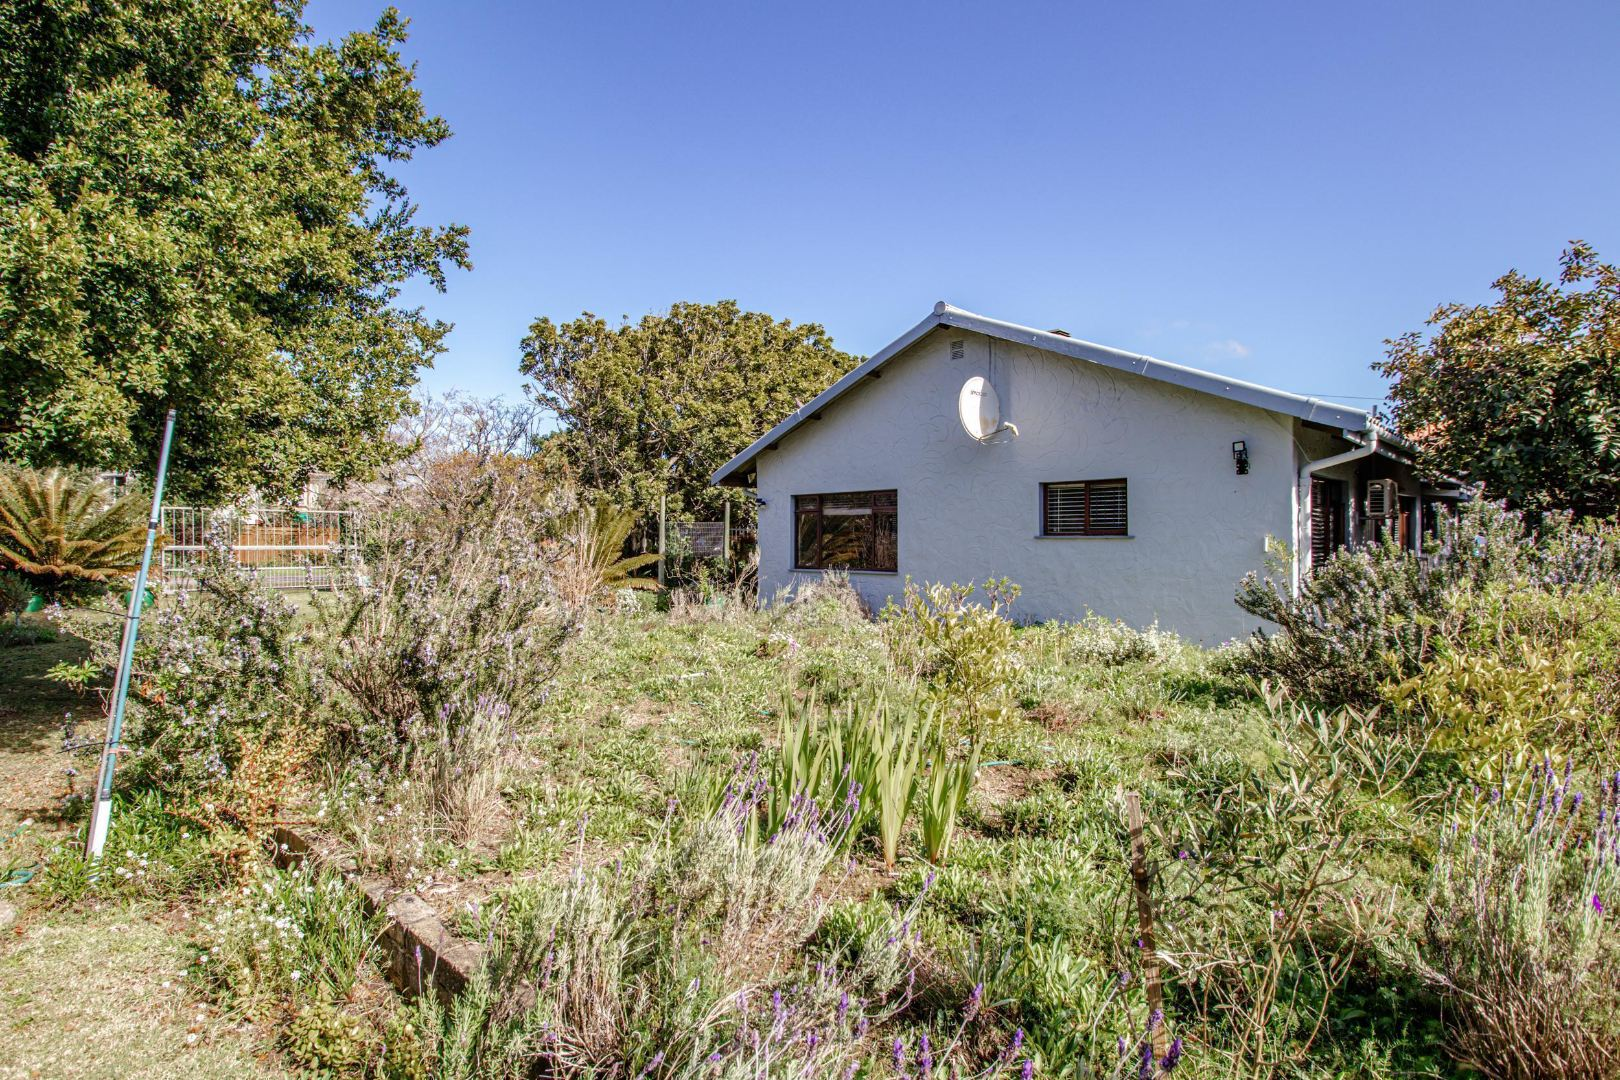 3 Bedroom House For Sale in The Village